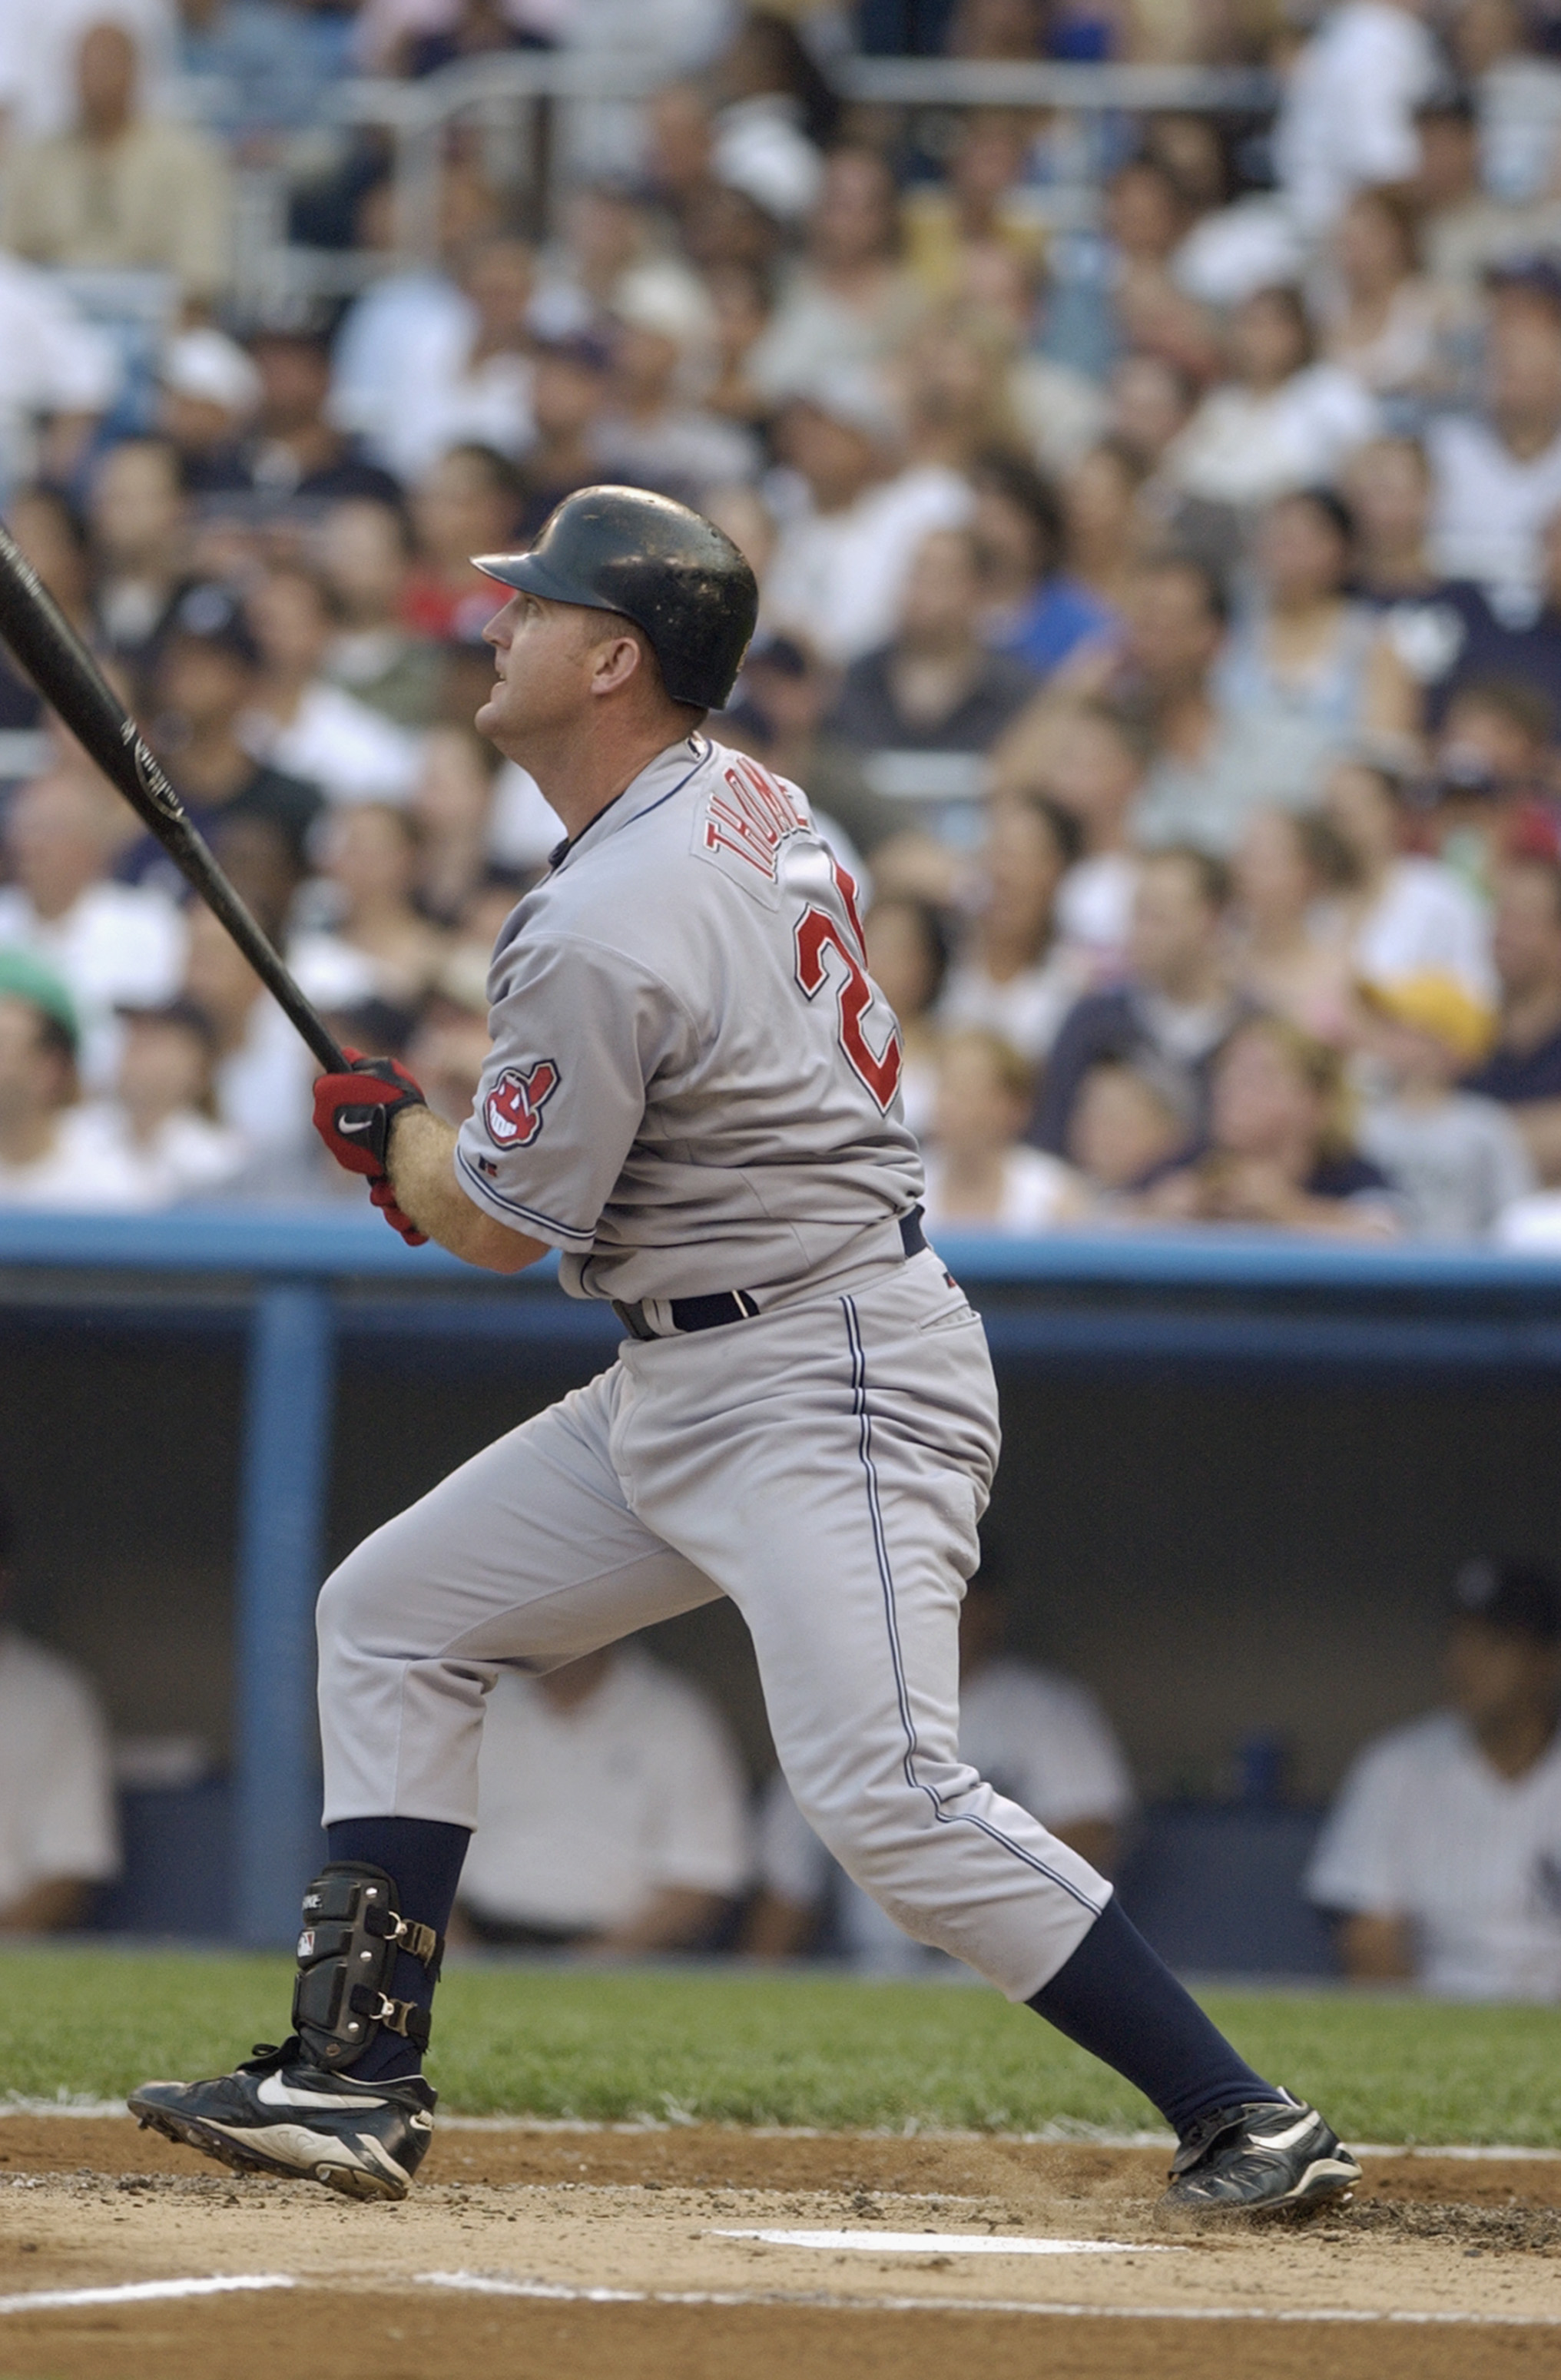 BRONX, NY - JULY 02:  Jim Thome #25 of the Cleveland Indians watches his two-run home run go over the wall in the first inning of the MLB game against the New York Yankees on July 2, 2002 at Yankee Stadium in the Bronx, New York. (Photo by Ezra Shaw /Gett